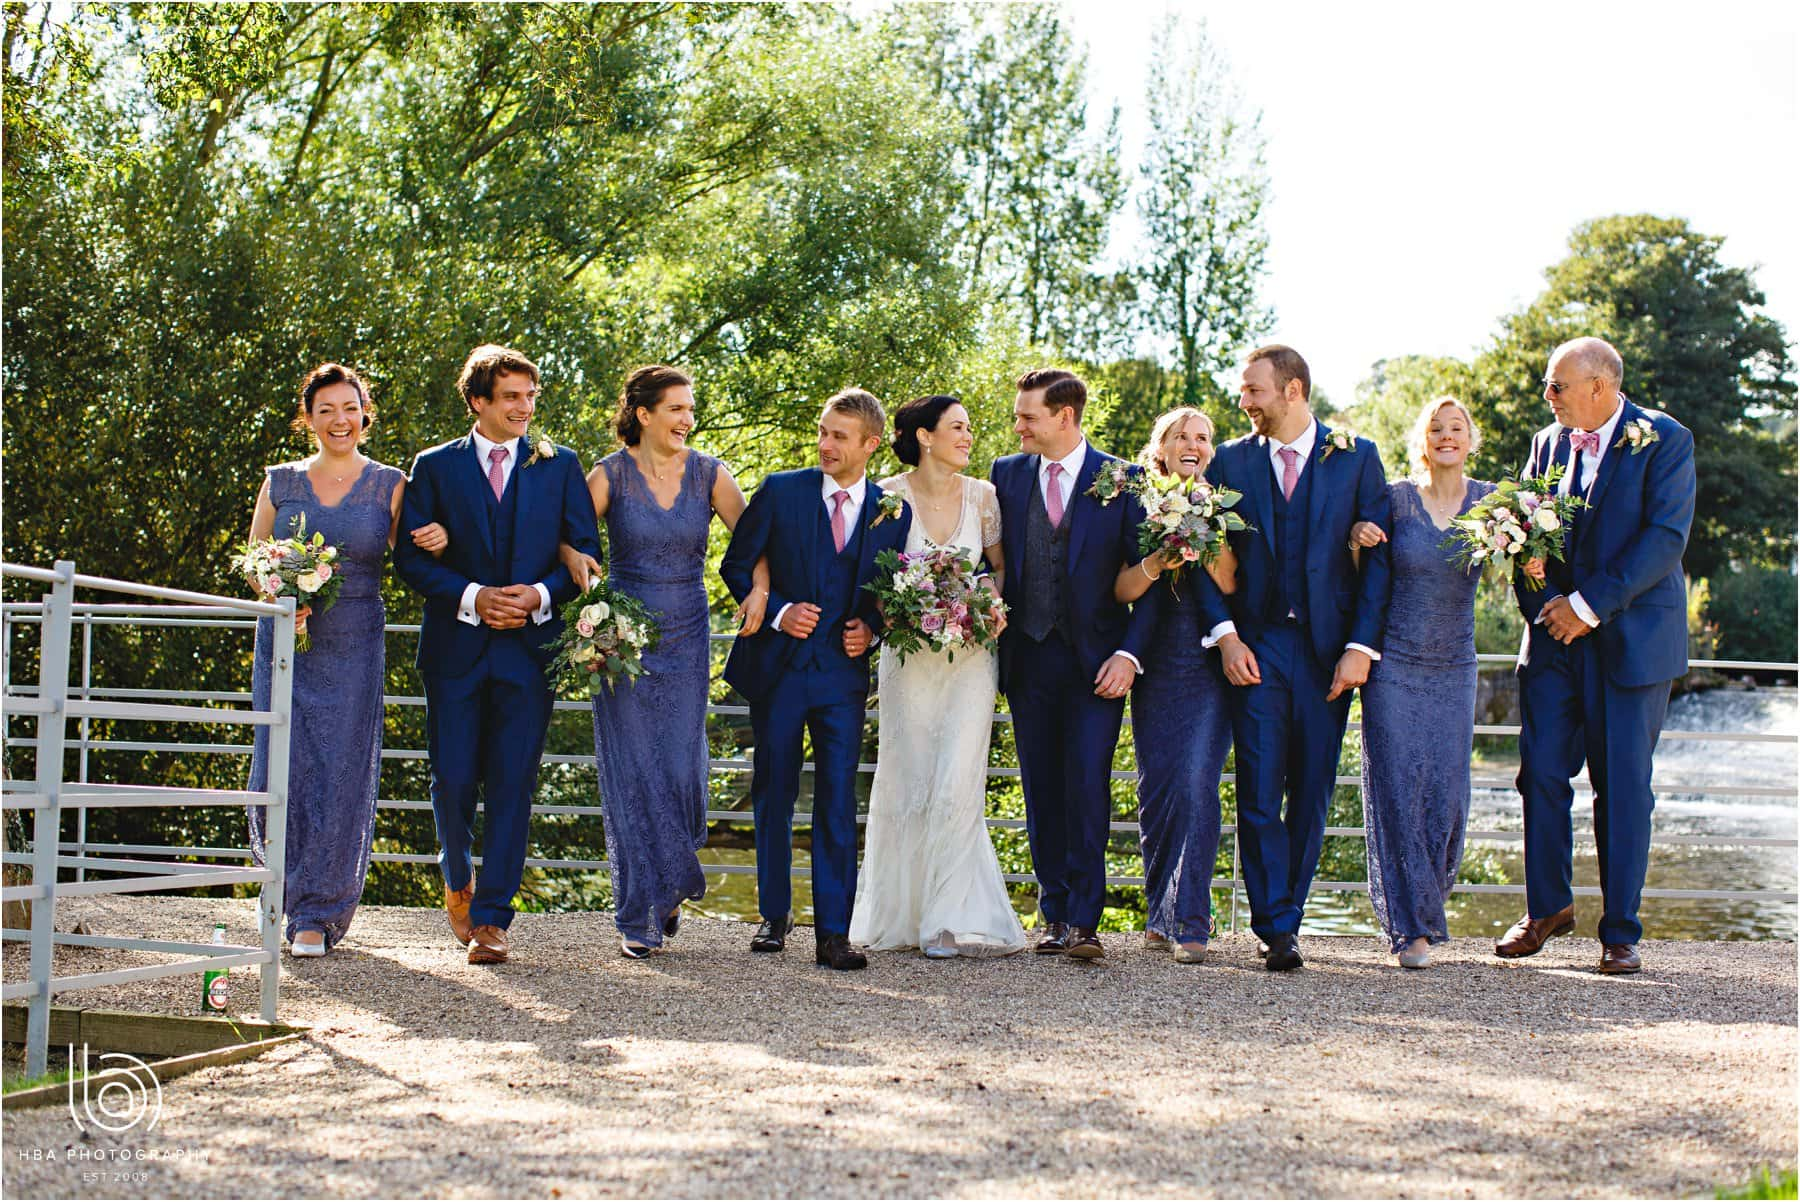 the bride & groom and their bridal party